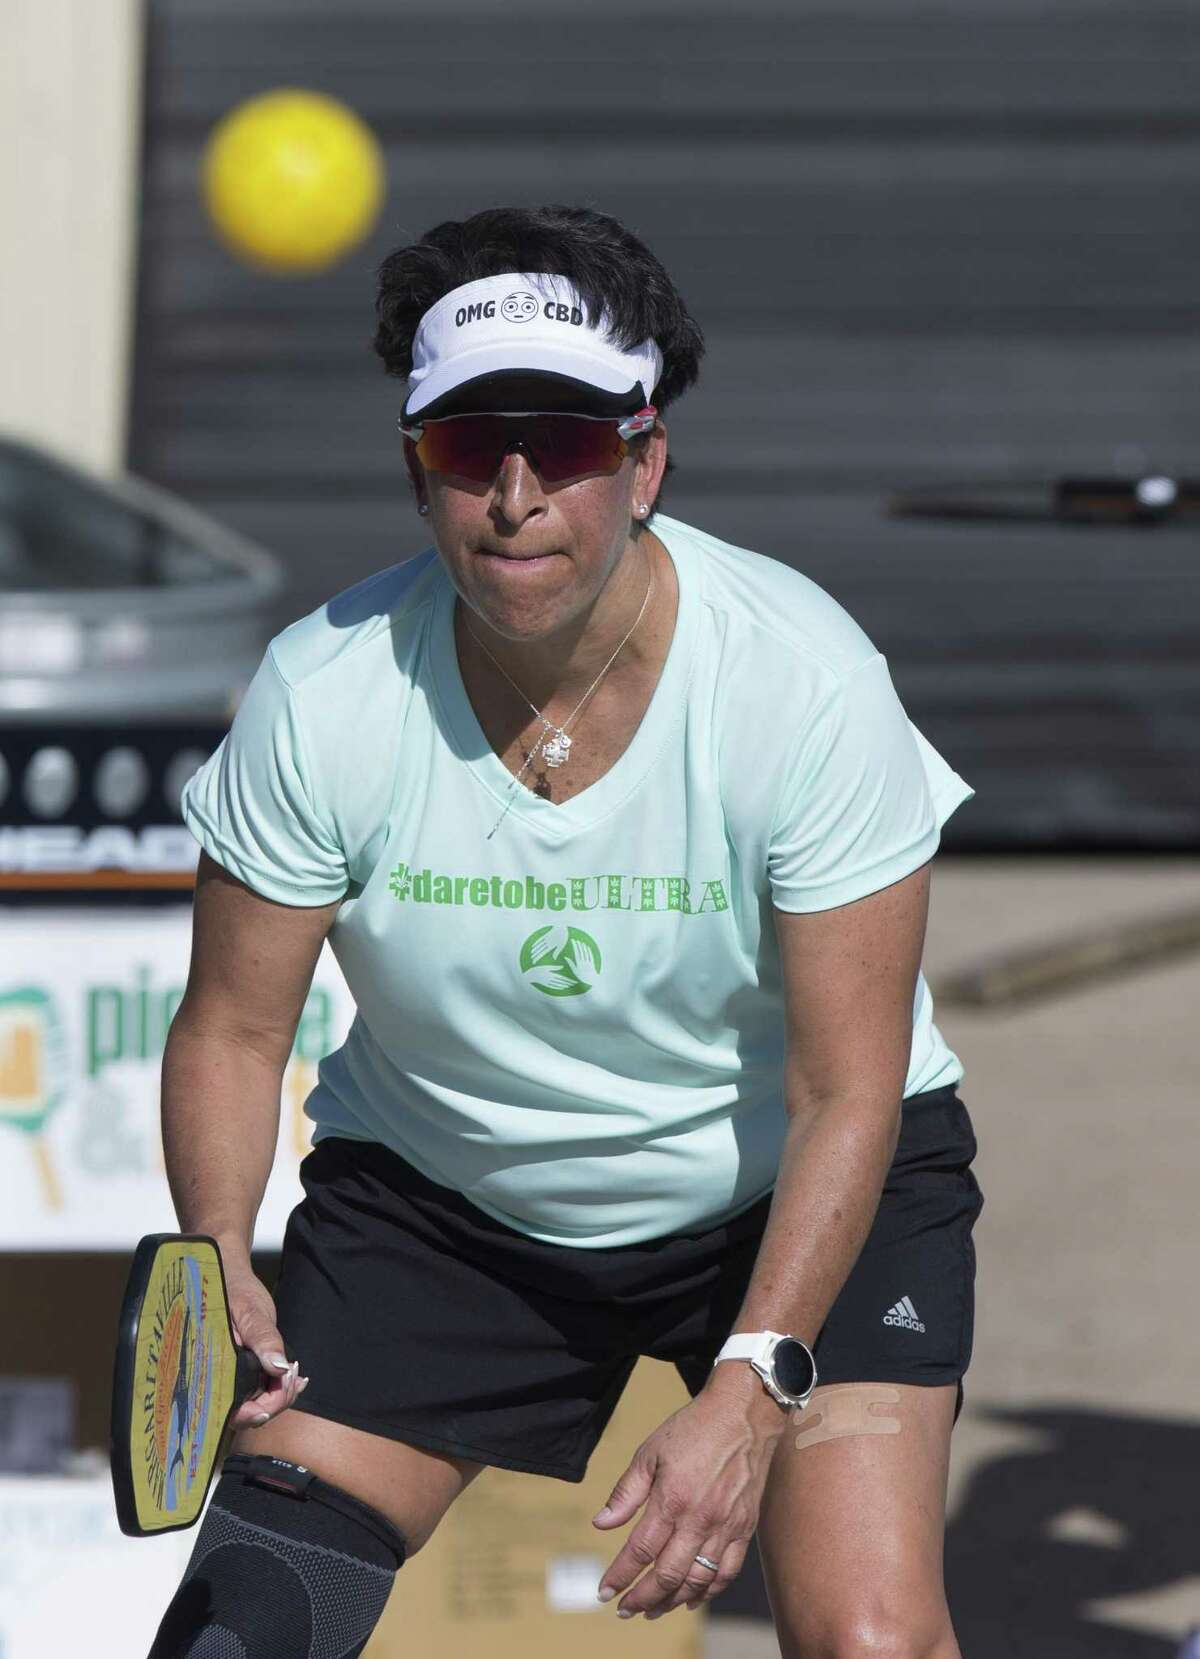 Pickle & Pints member Wendi Myers keeps her eyes on the ball and ready to return the ball to her opponents during a tournament match at No Label Brewing on Saturday, April 20, 2019, in Katy. Pickleball is one of the fastest growing sports in America and Pickle & Pints hosts pickleball tournaments at local breweries.